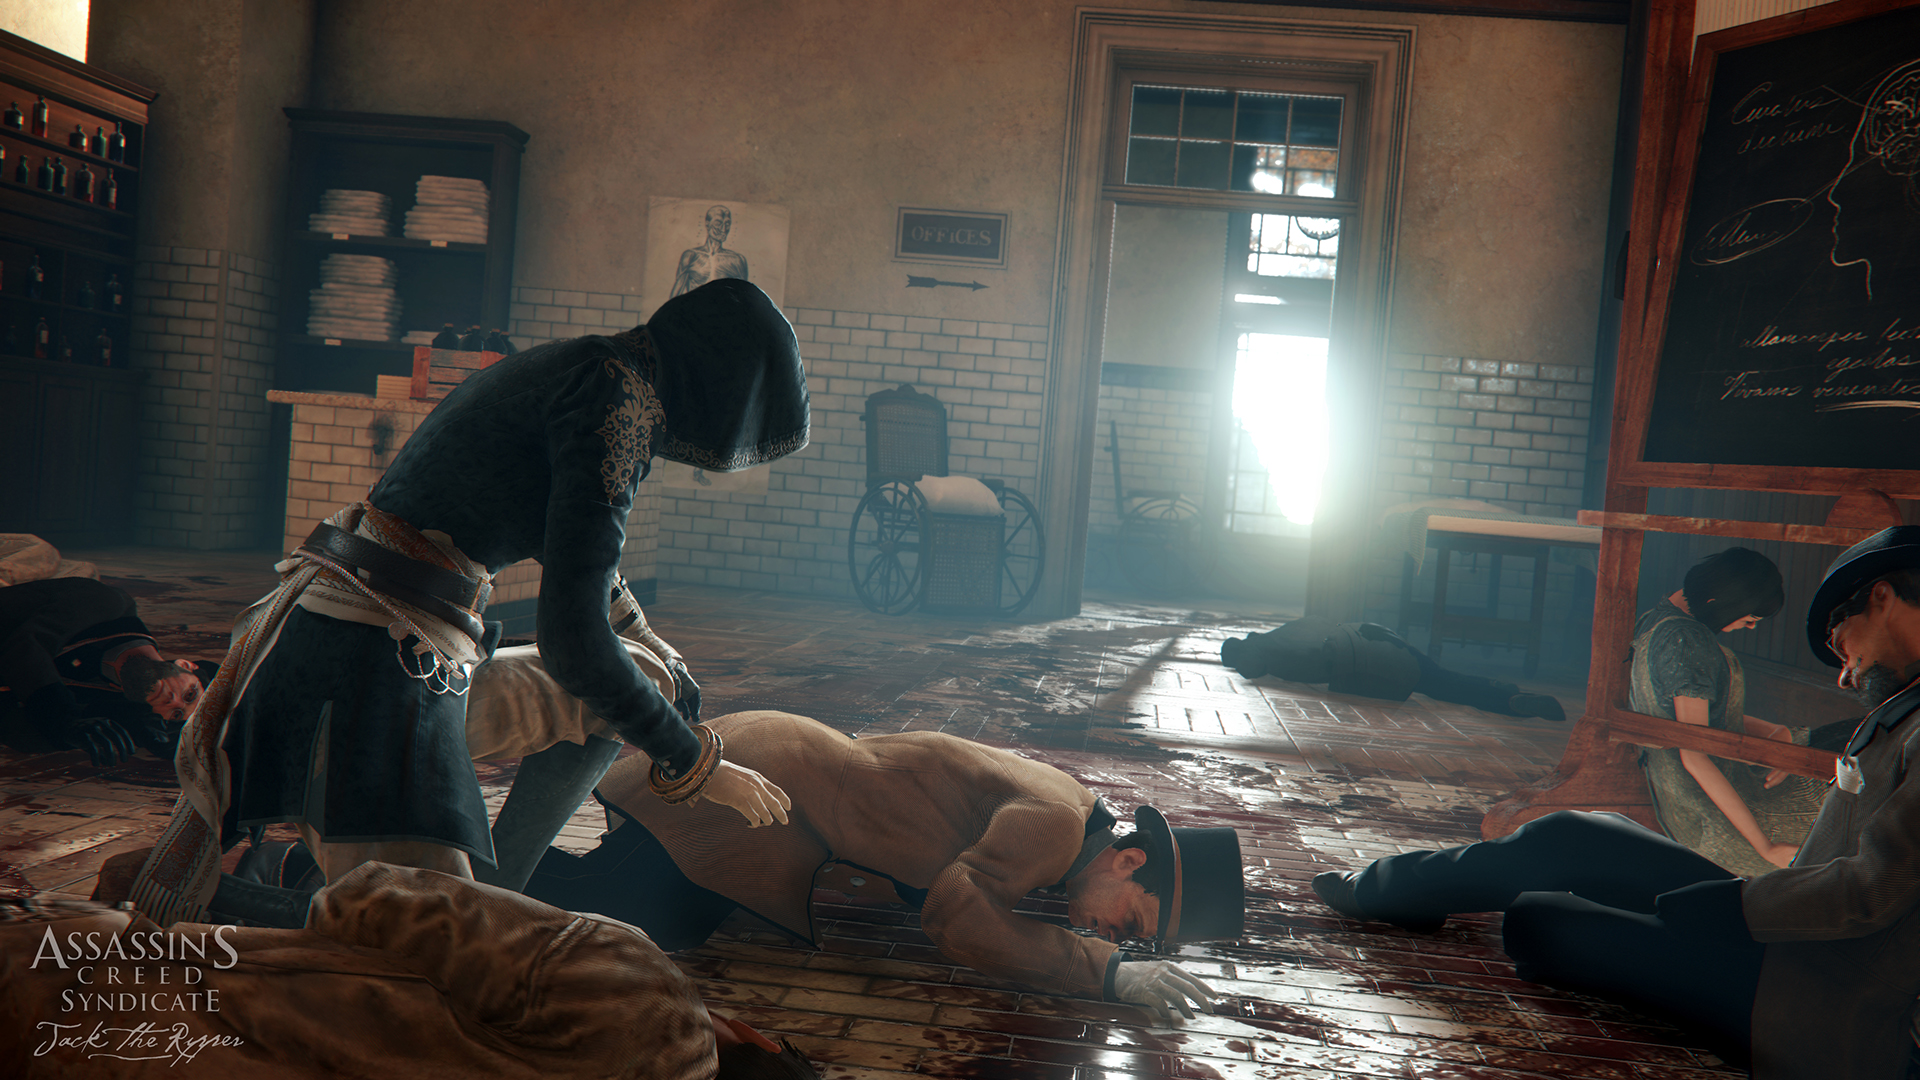 assassins_creed_syndicate_jack_the_ripper (3)